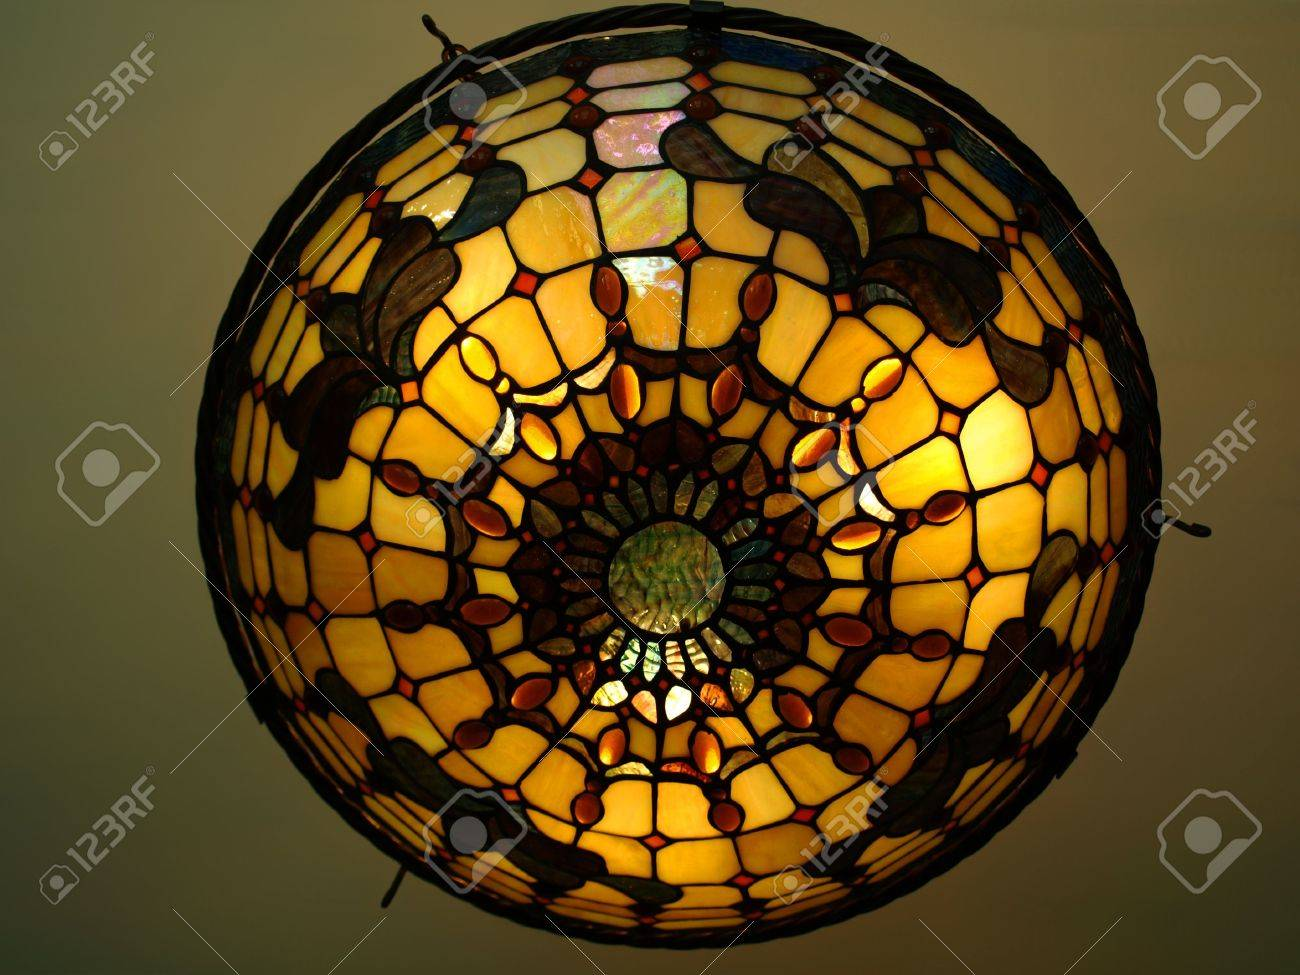 Plafoniere Tiffany : Photo of a beautiful lit tiffany style ceiling lamp in warm and